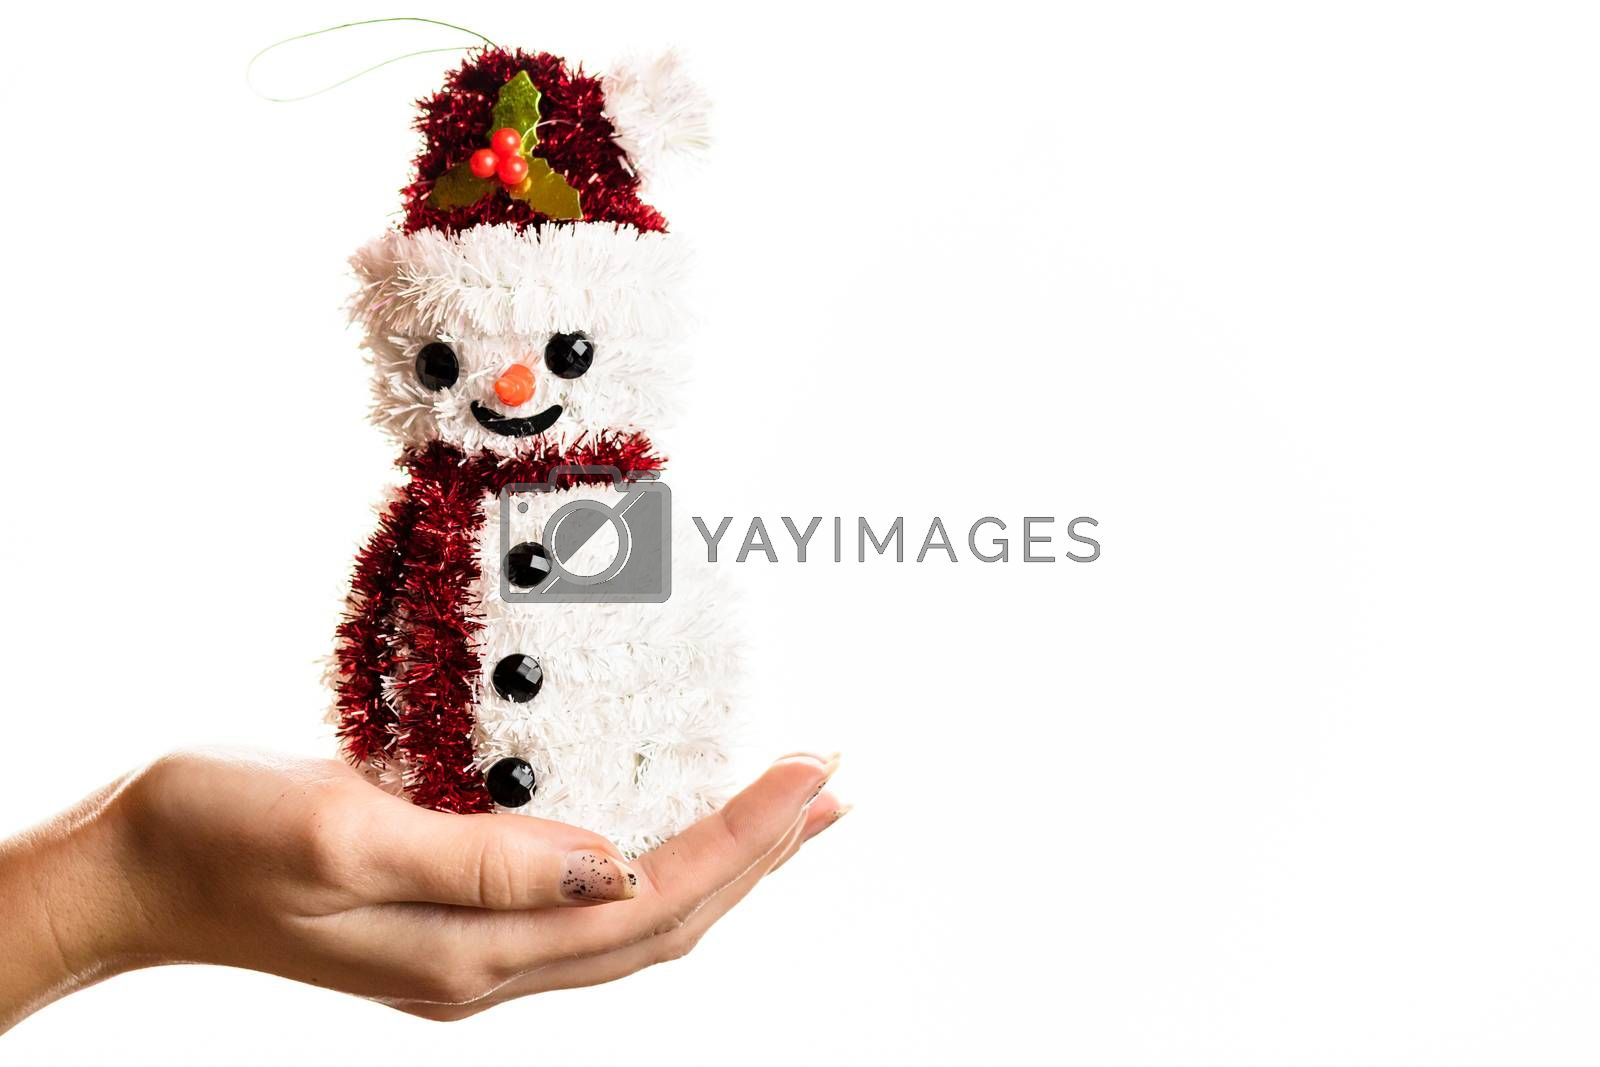 Hand holding Christmas snowman figurine isolated on white background